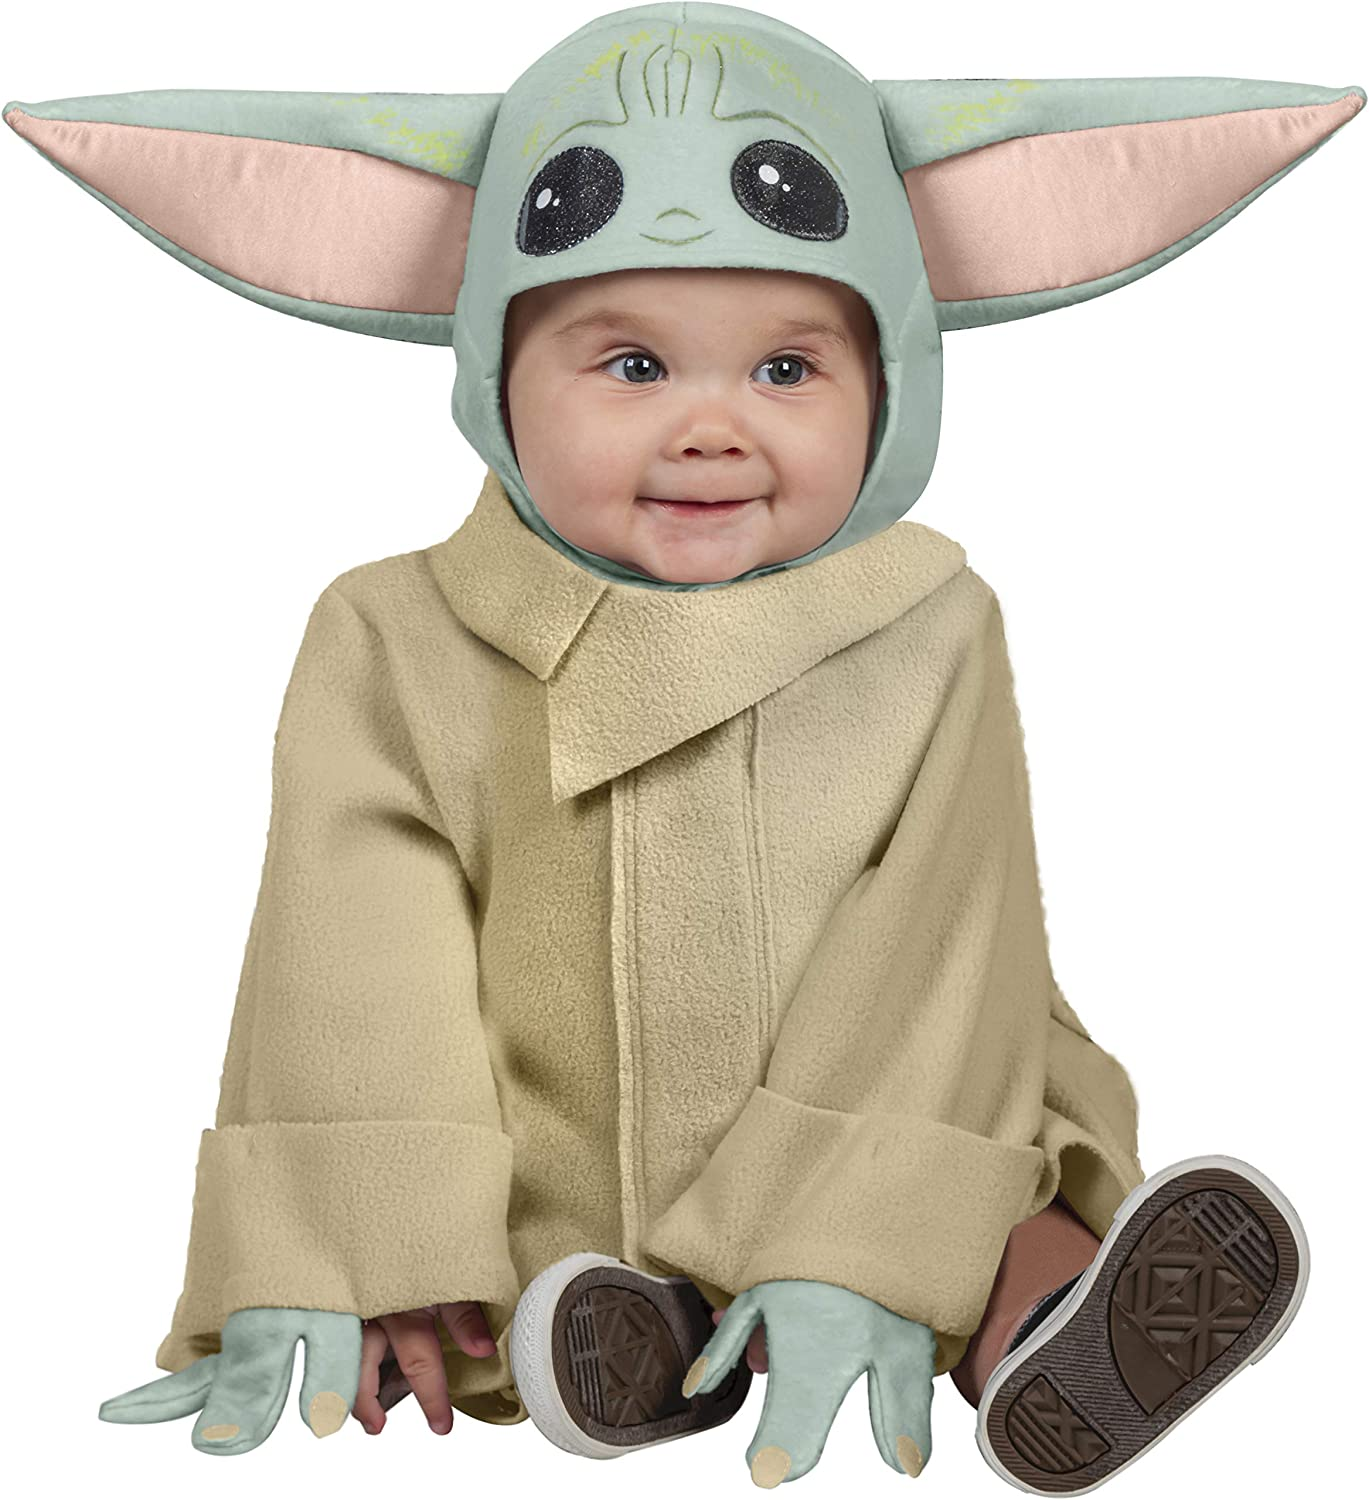 Rubie's Baby Star Wars The Mandalorian The Child Costume